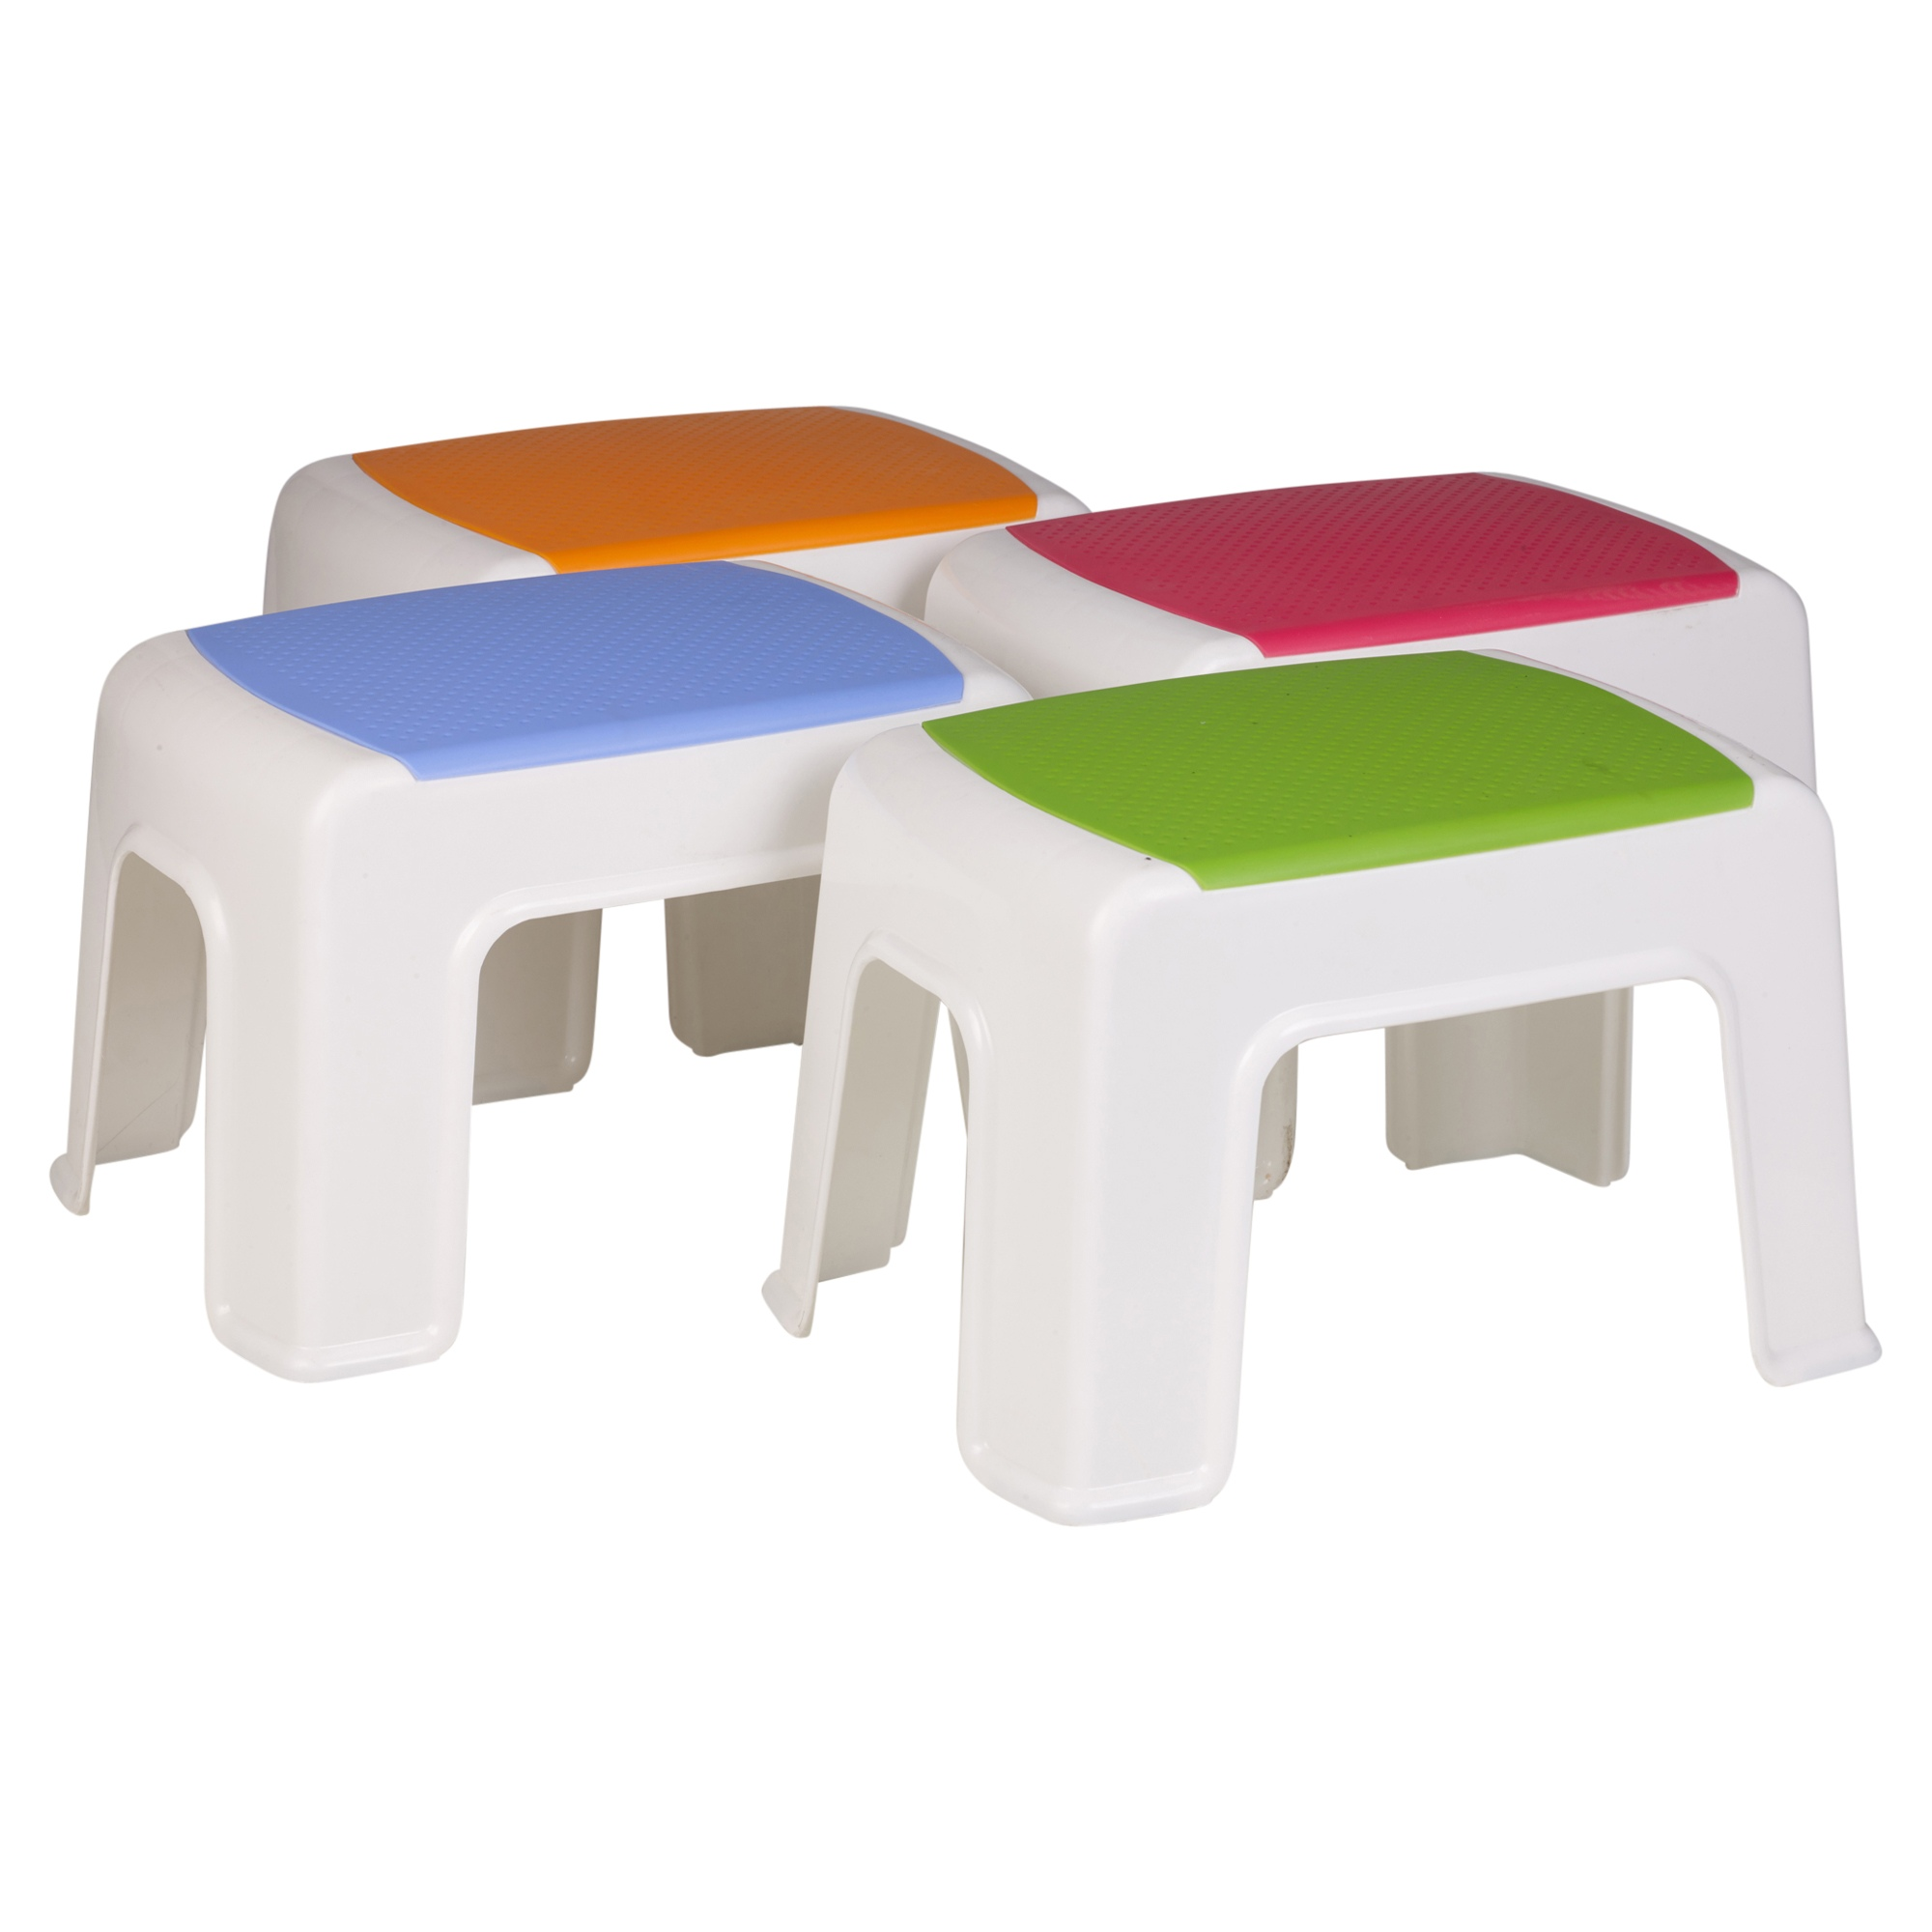 Children S Playroom Multi Purpose Sturdy Plastic Step Stool Home Kitchen